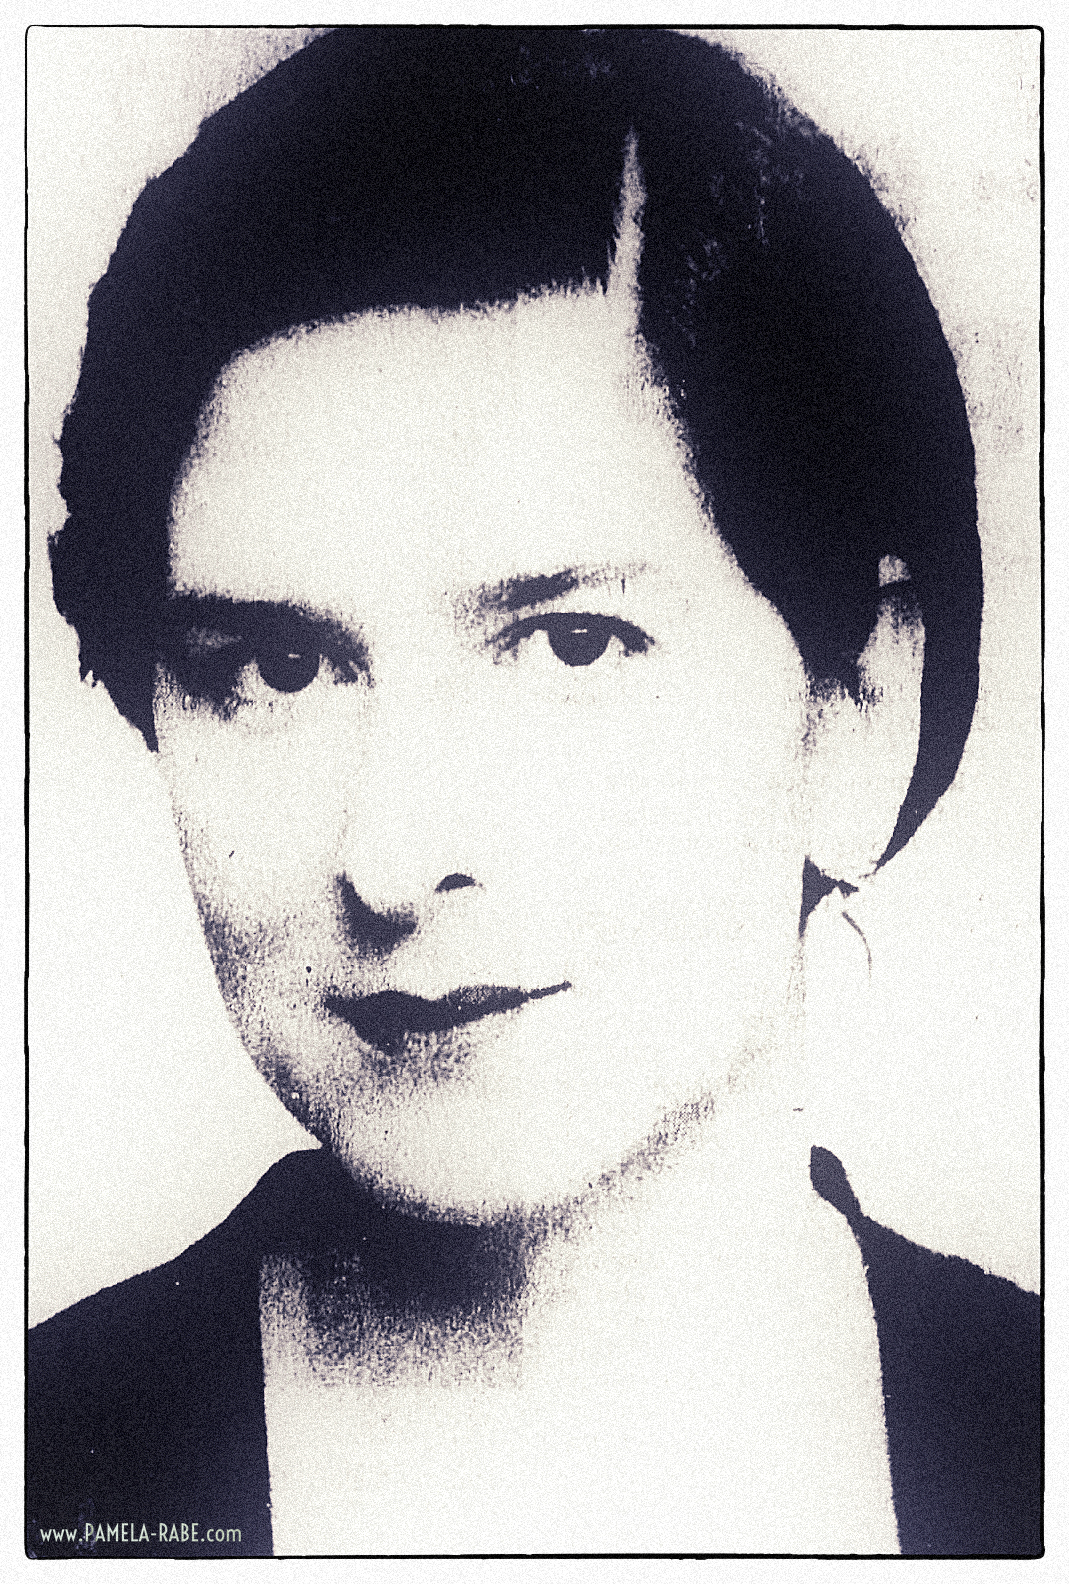 Pamela Rabe | The Age Interview 1990